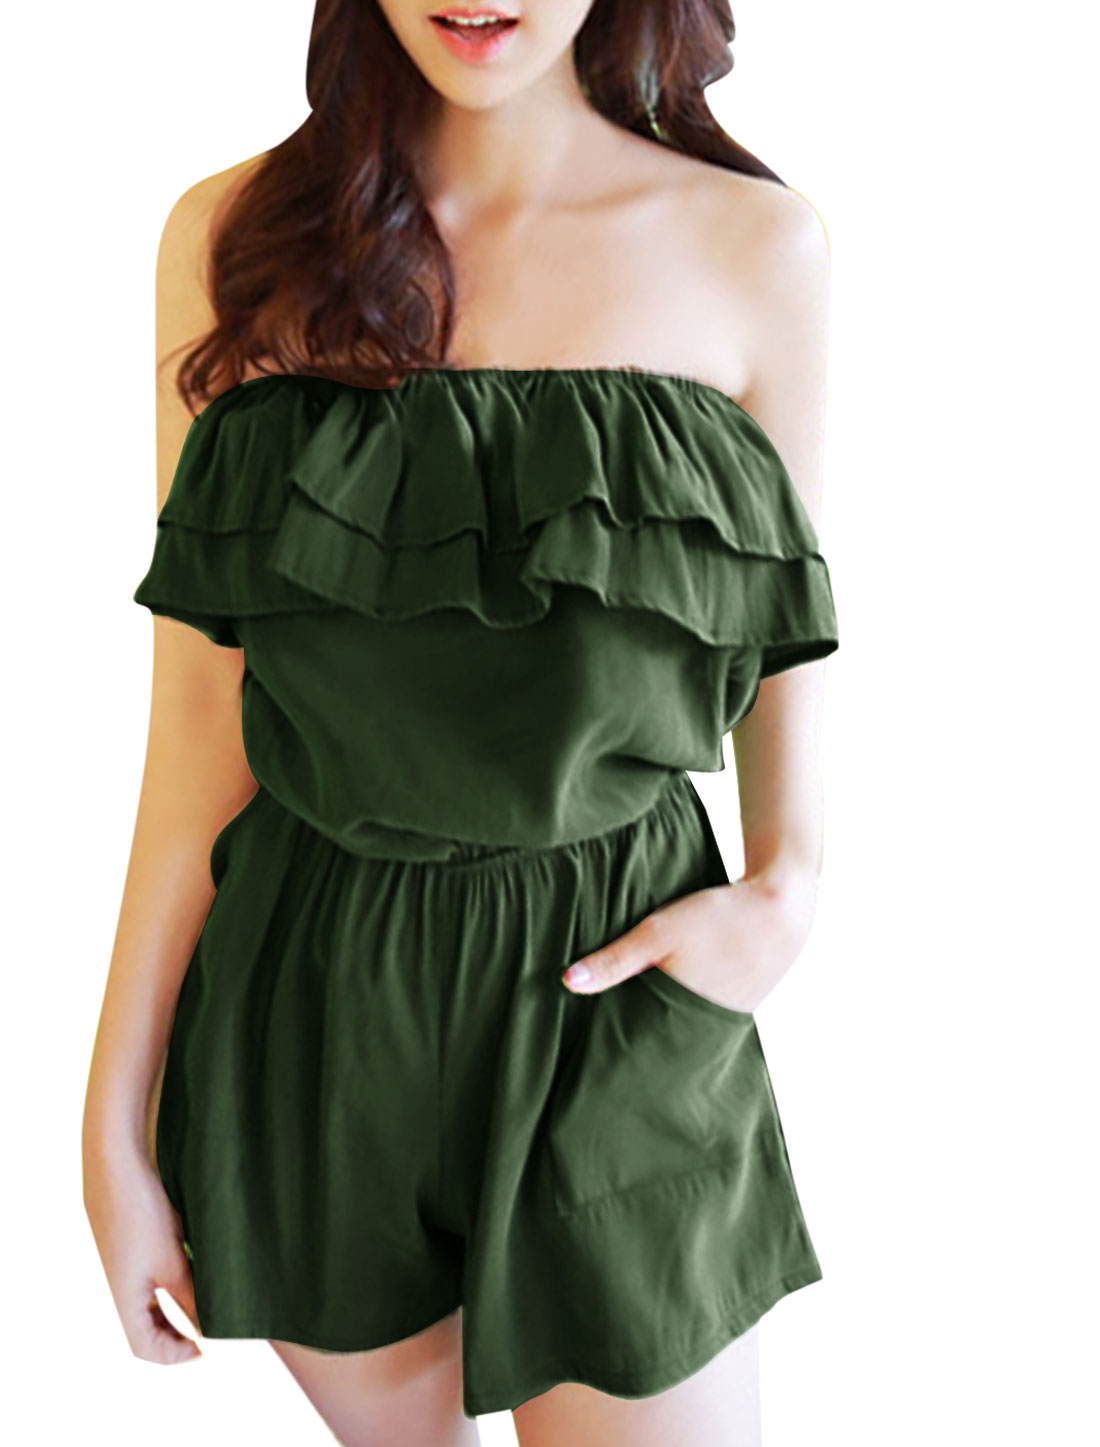 Ladies Ruffled Upper Strapless Slant Pockets Sweet Tube Romper Army Green XS